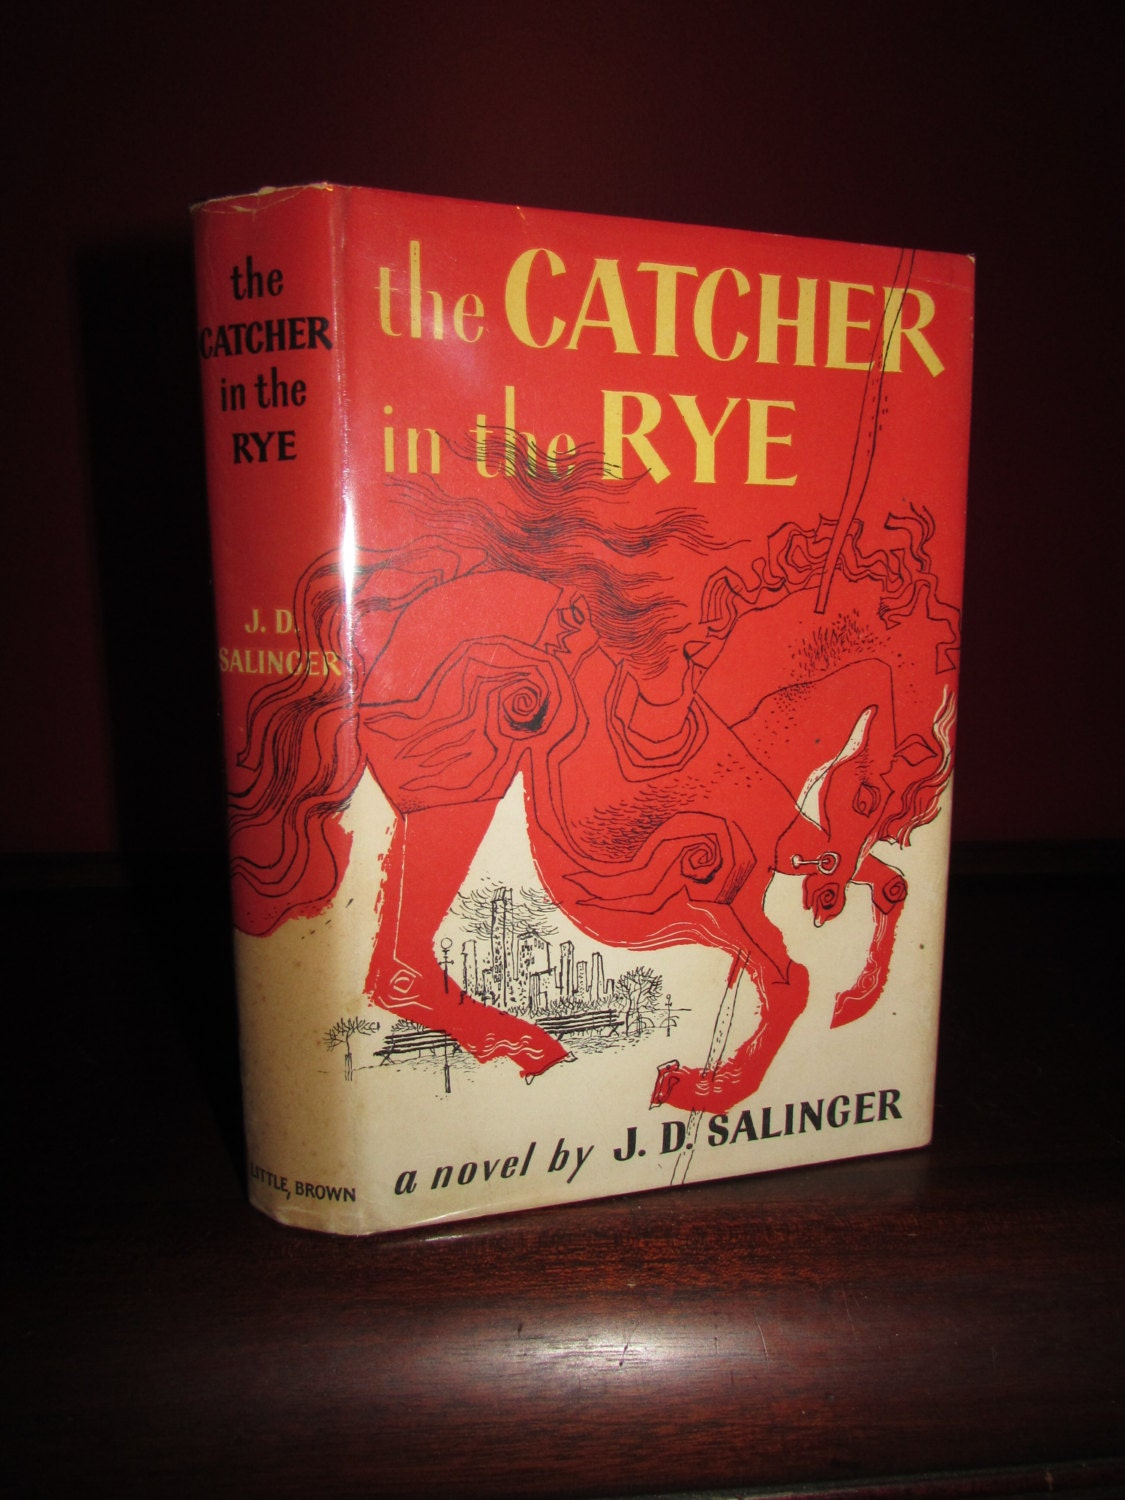 an analysis of holden and his phony family in jd salingers the catcher in the rye Catcher holdens phony phobia in jd salingers catcher in catcher in the rye an analysis of phobia in jd salingers catcher in the rye of holden in j d.